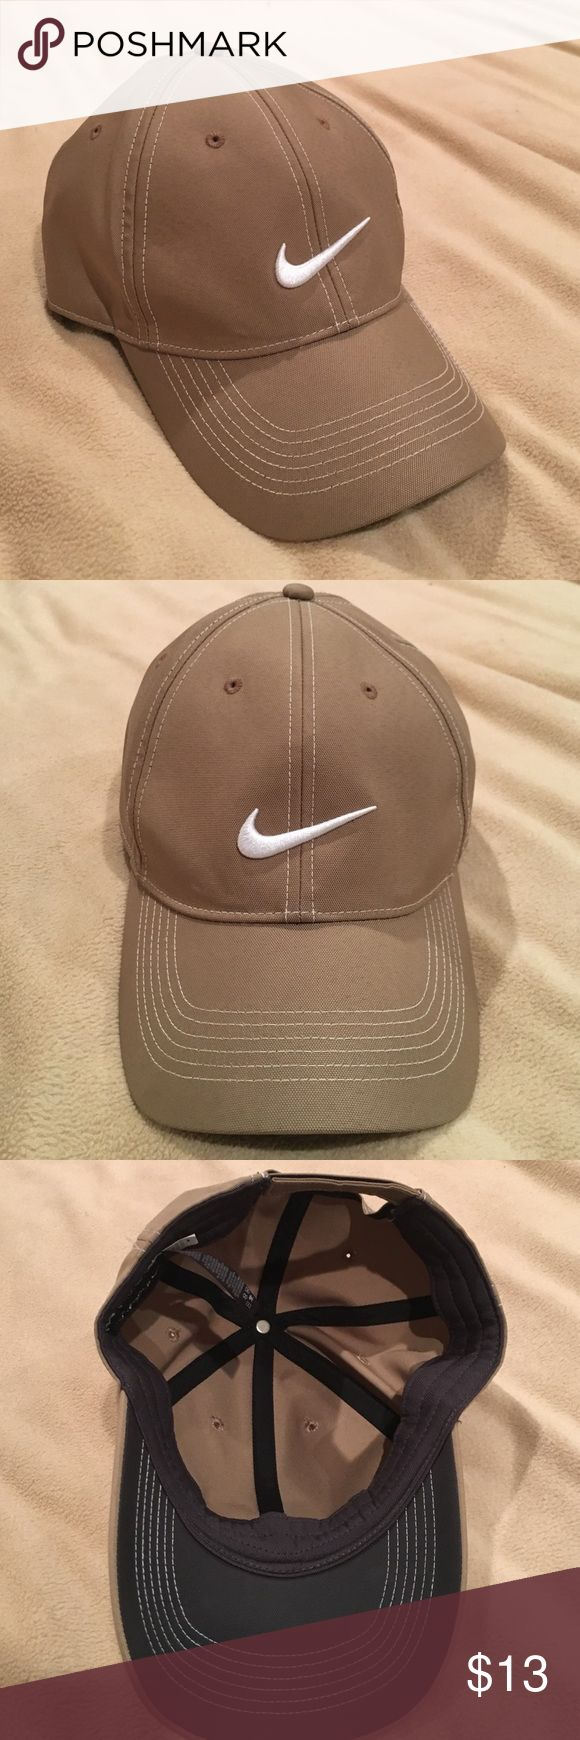 Tan Nike Golf Hat Brand new without tags, adorable just not my style anymore Nike Accessories Hats